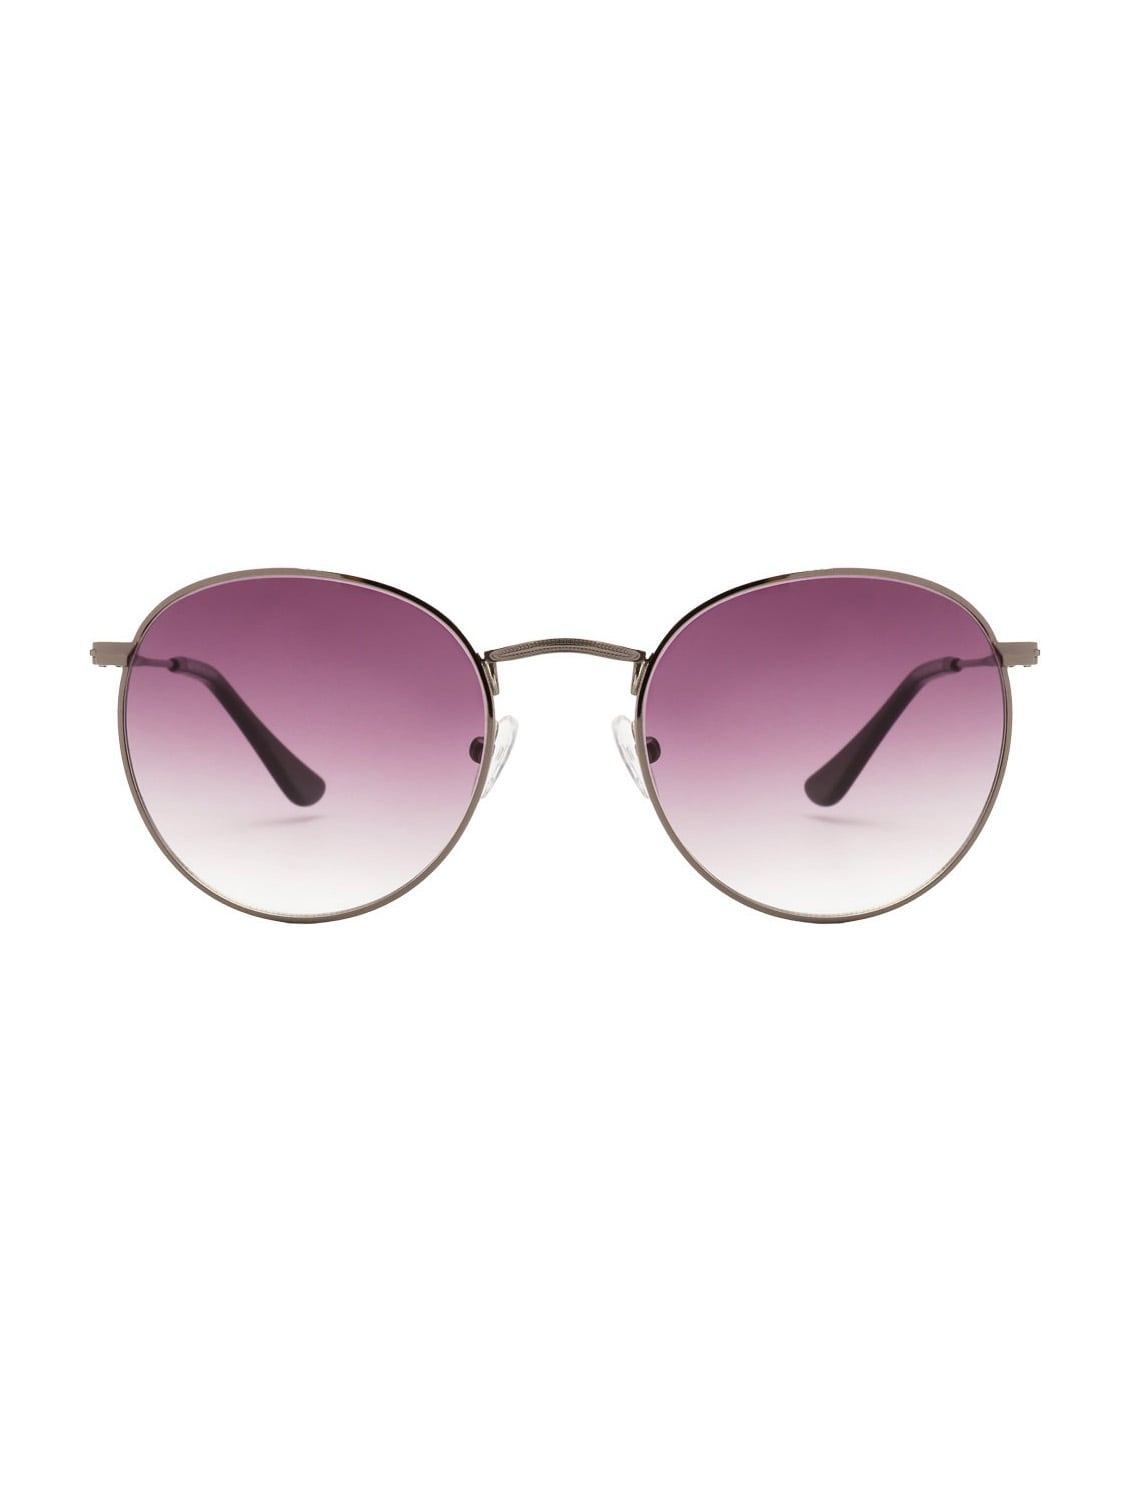 Vincent Chase Ziro In VC 6992 Gunmetal Grey Gradient C3 Sunglasses - By